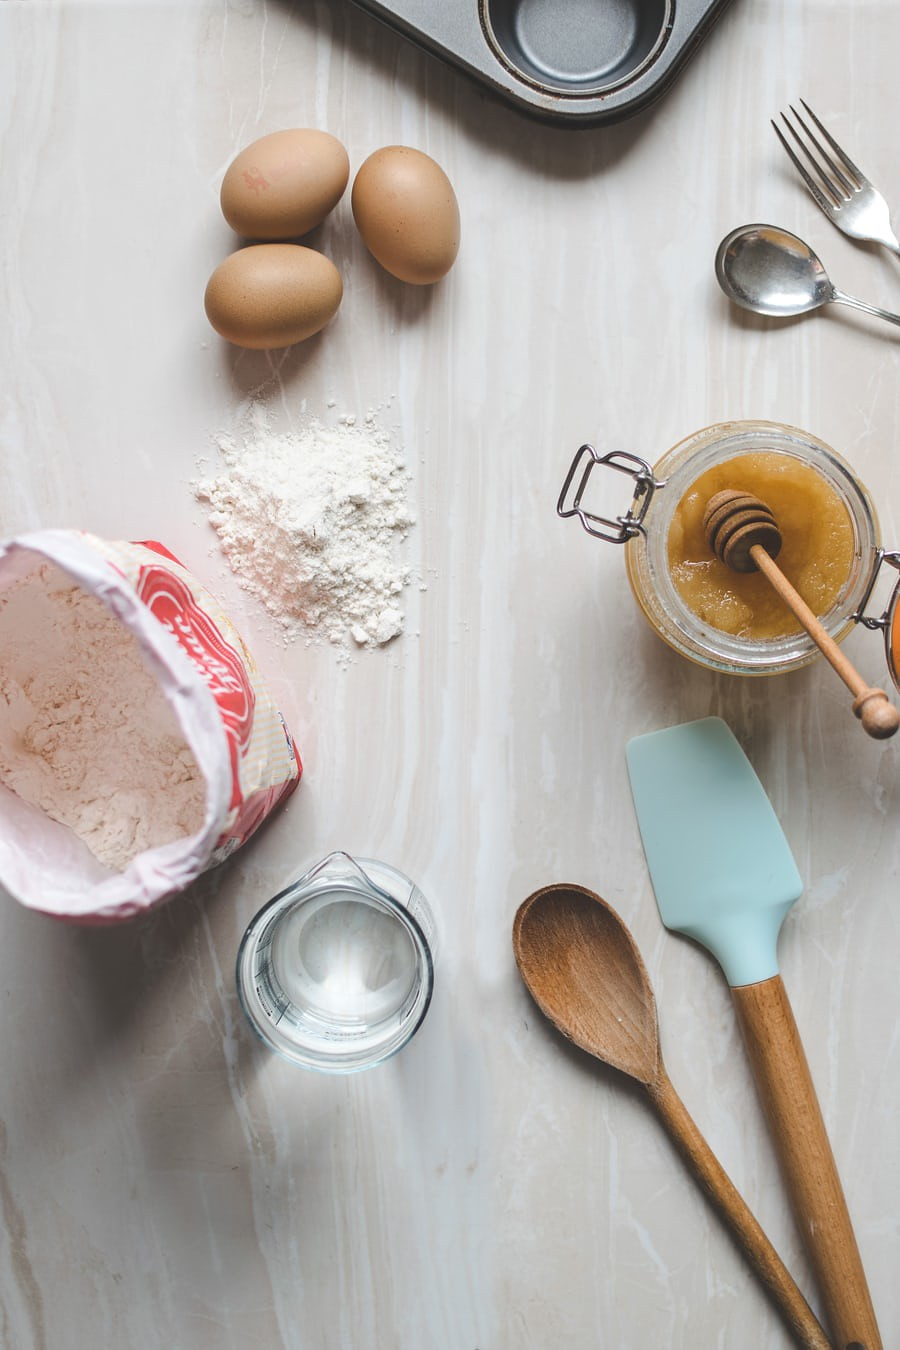 Ingredients and baking tin, ready for some baking activity